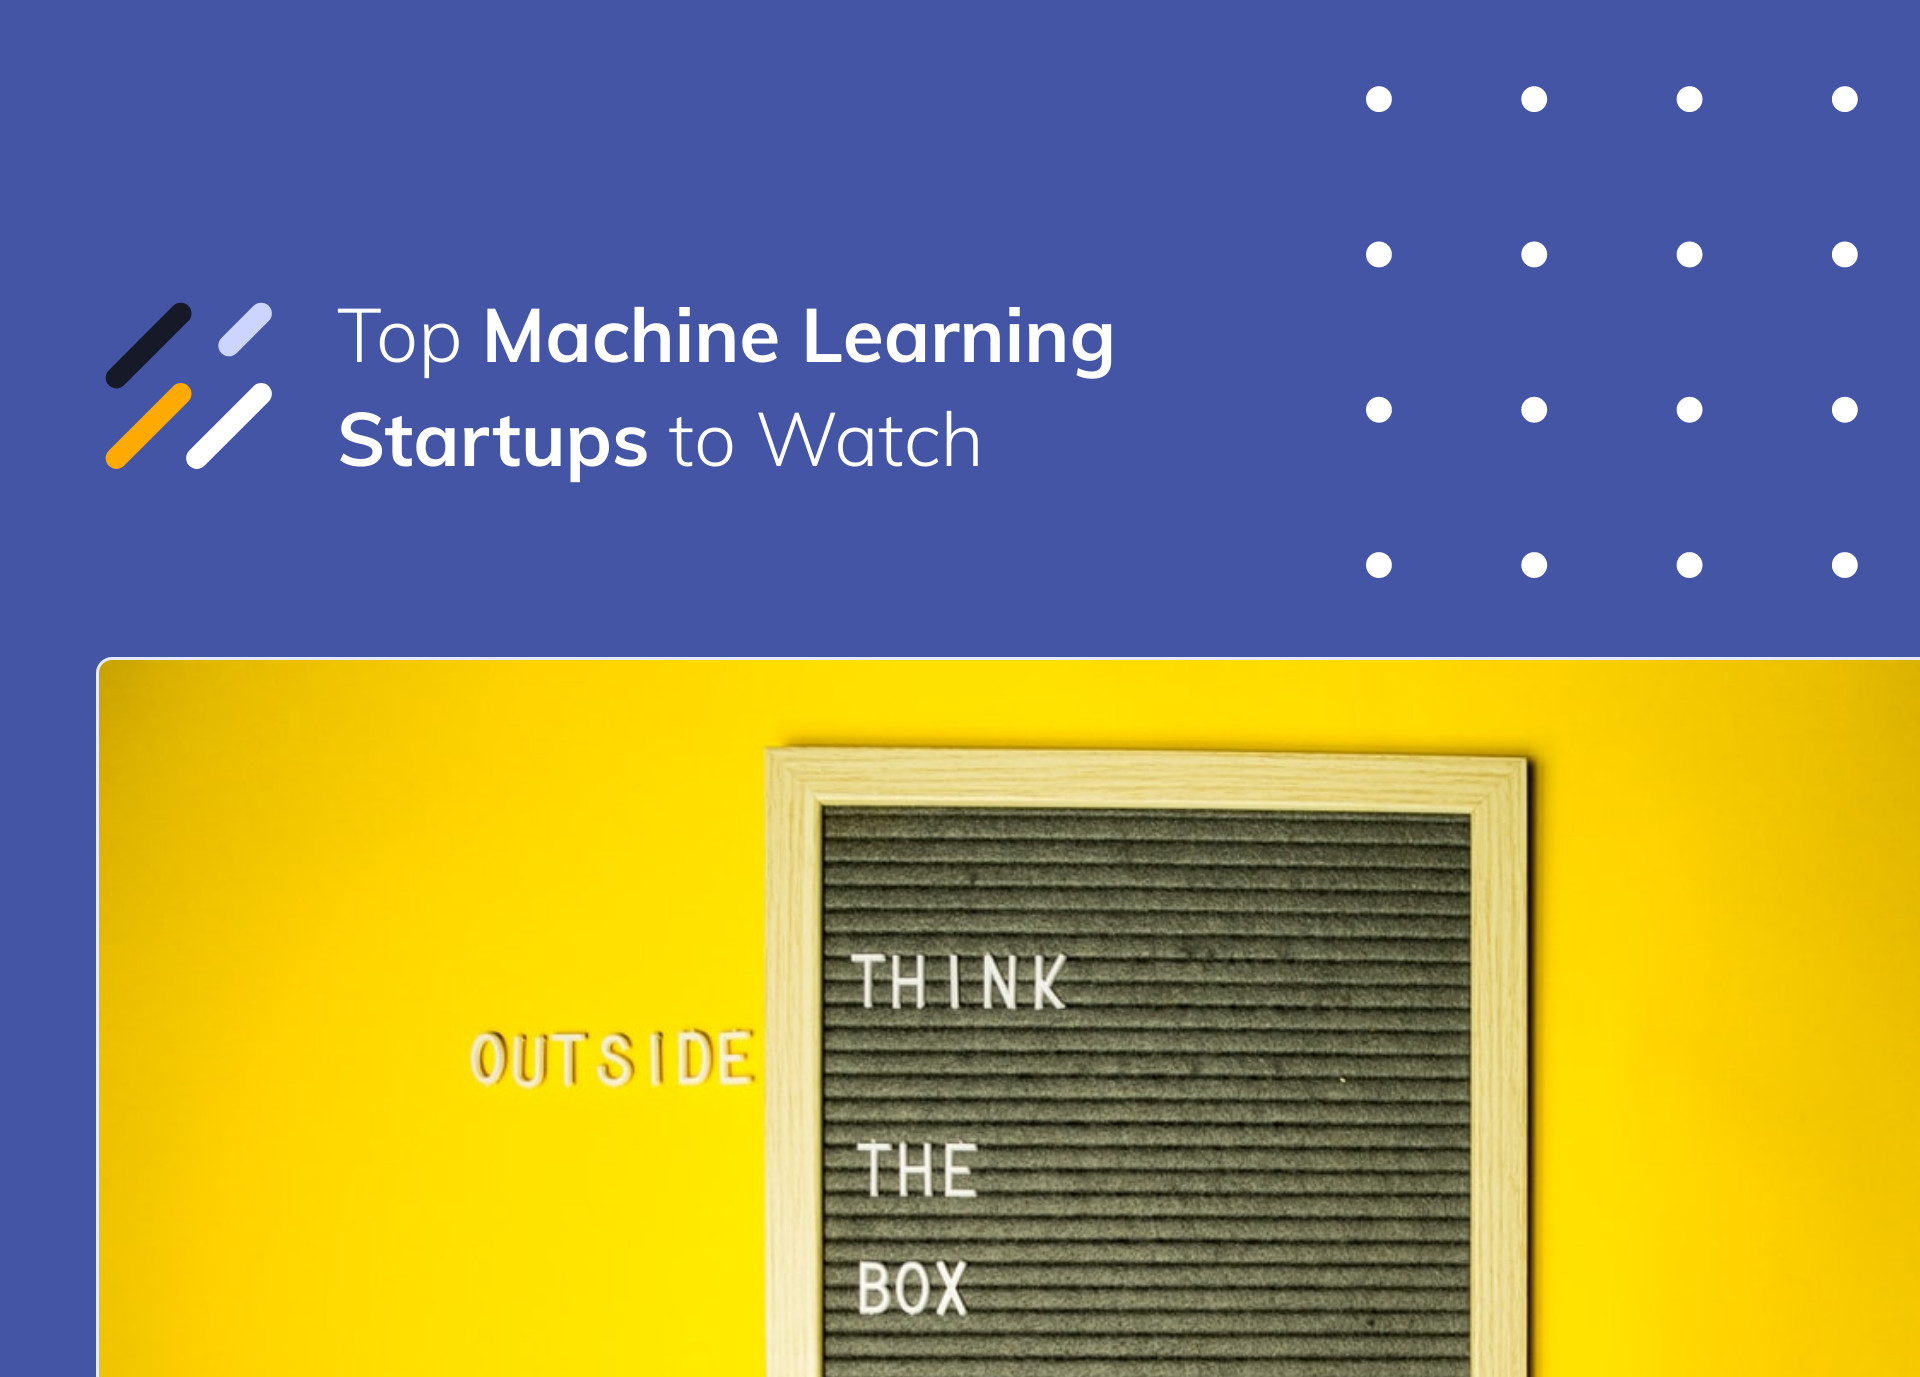 Top Machine Learning Startups to Watch in 2021